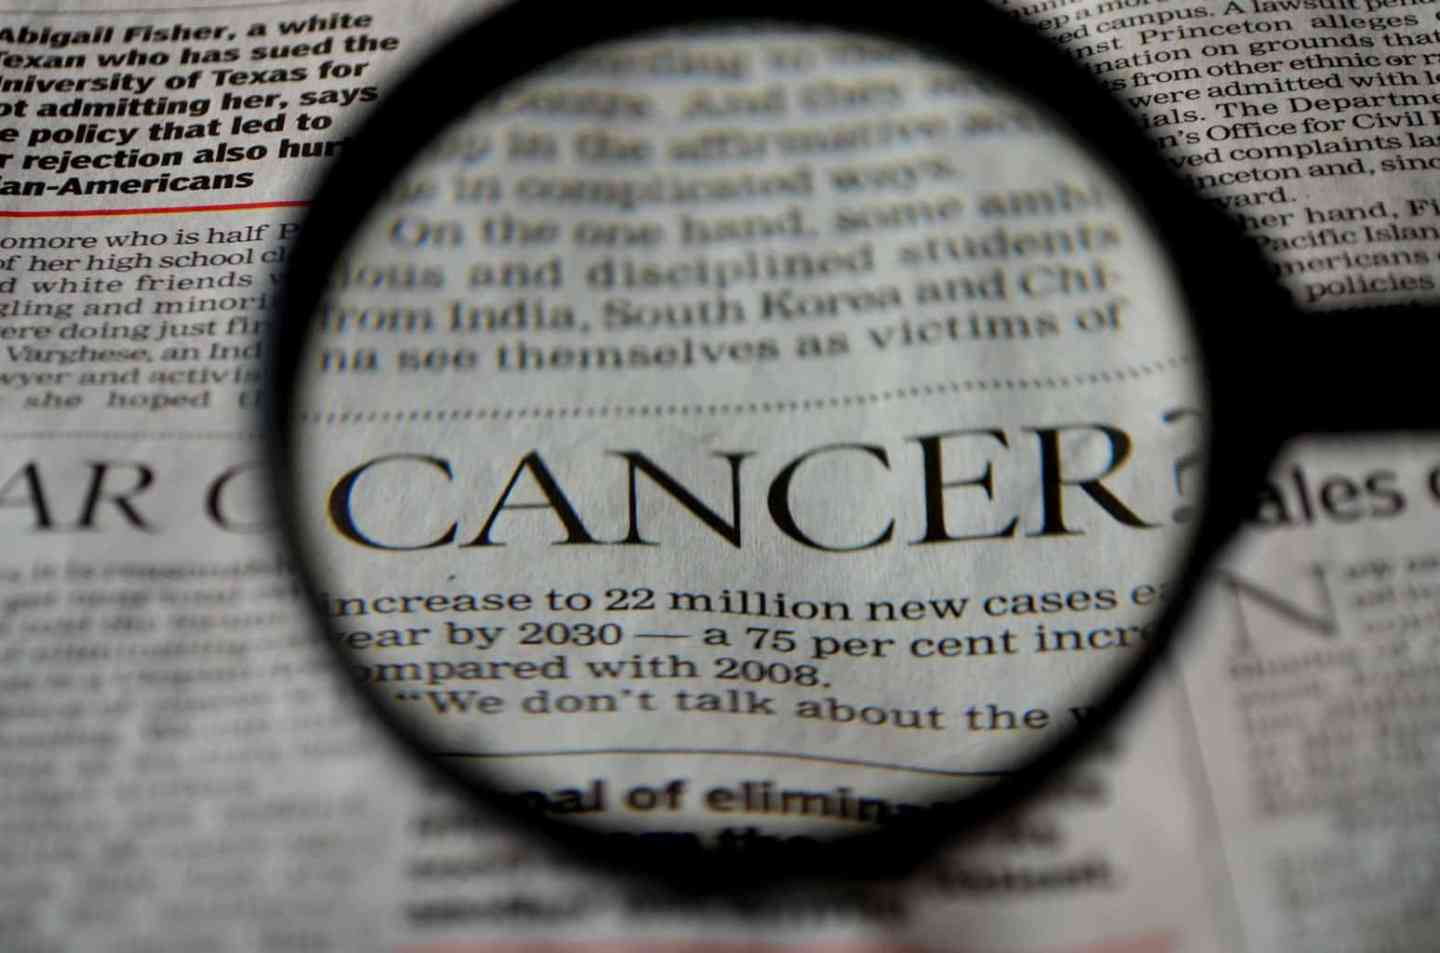 Lymphatic Cancer – How Much Do You Know?